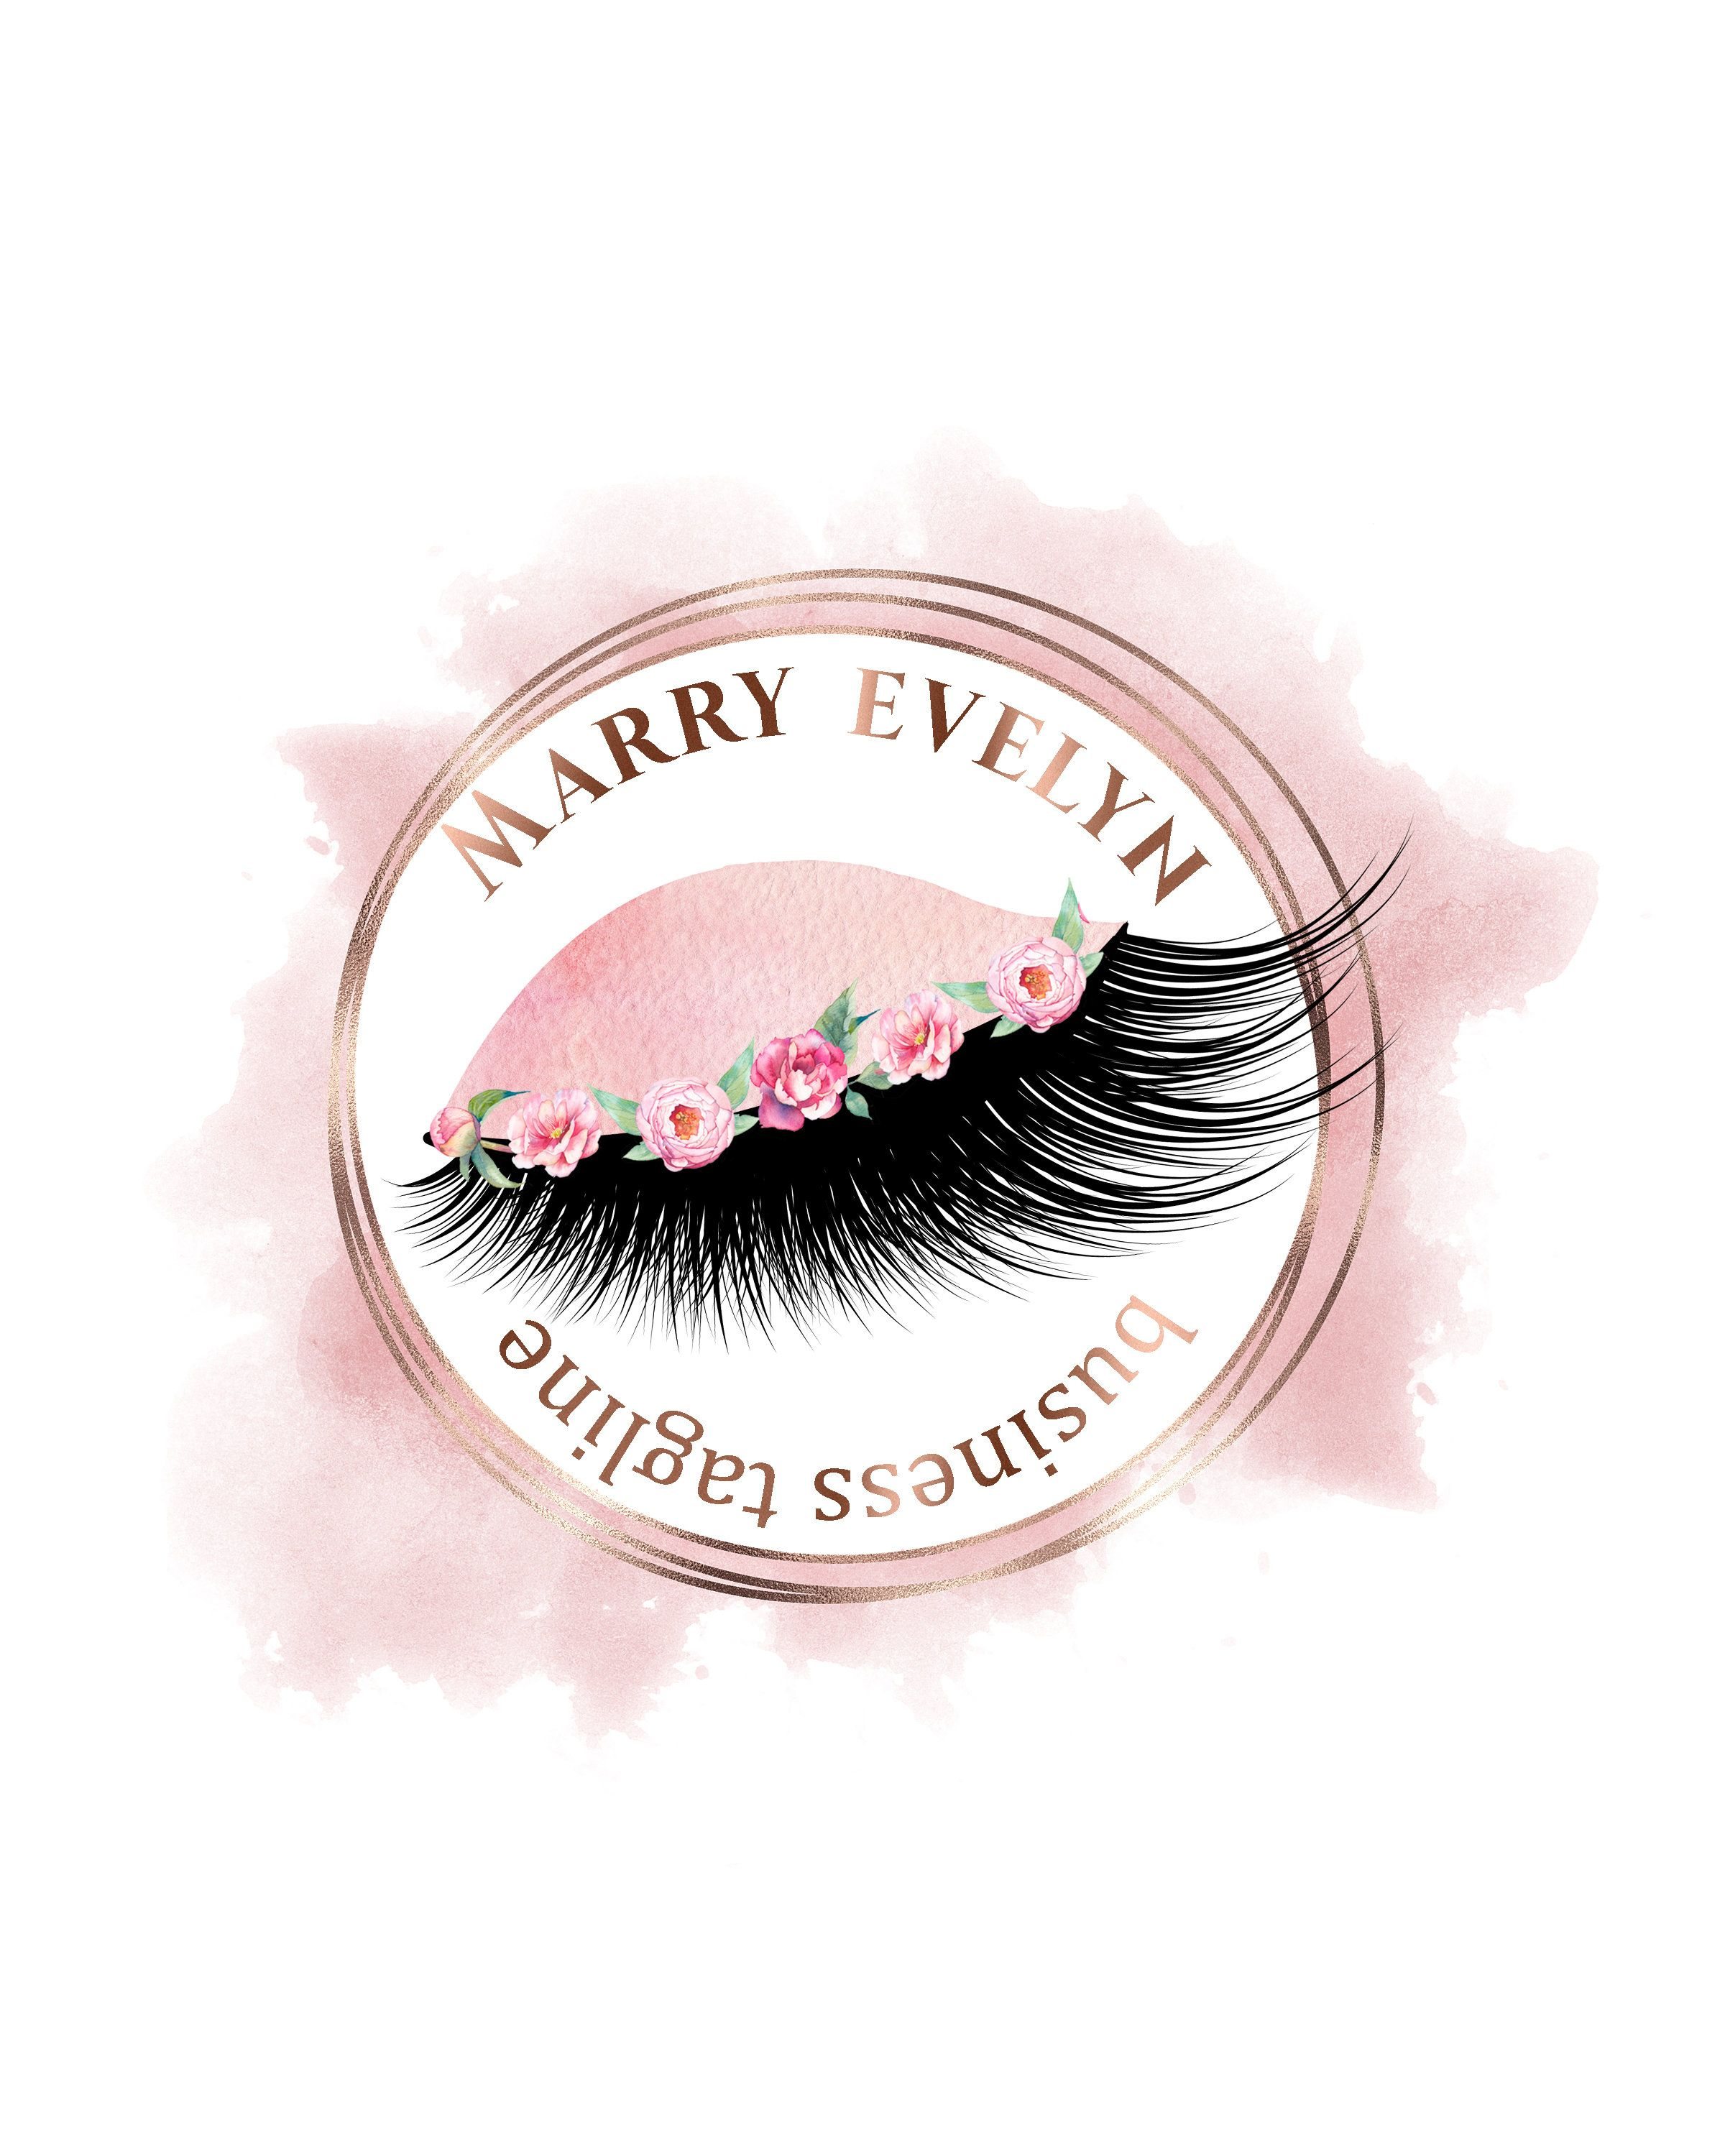 Lashes Logo, Makeup Logos, Eyelashes Logo, Salon Logos